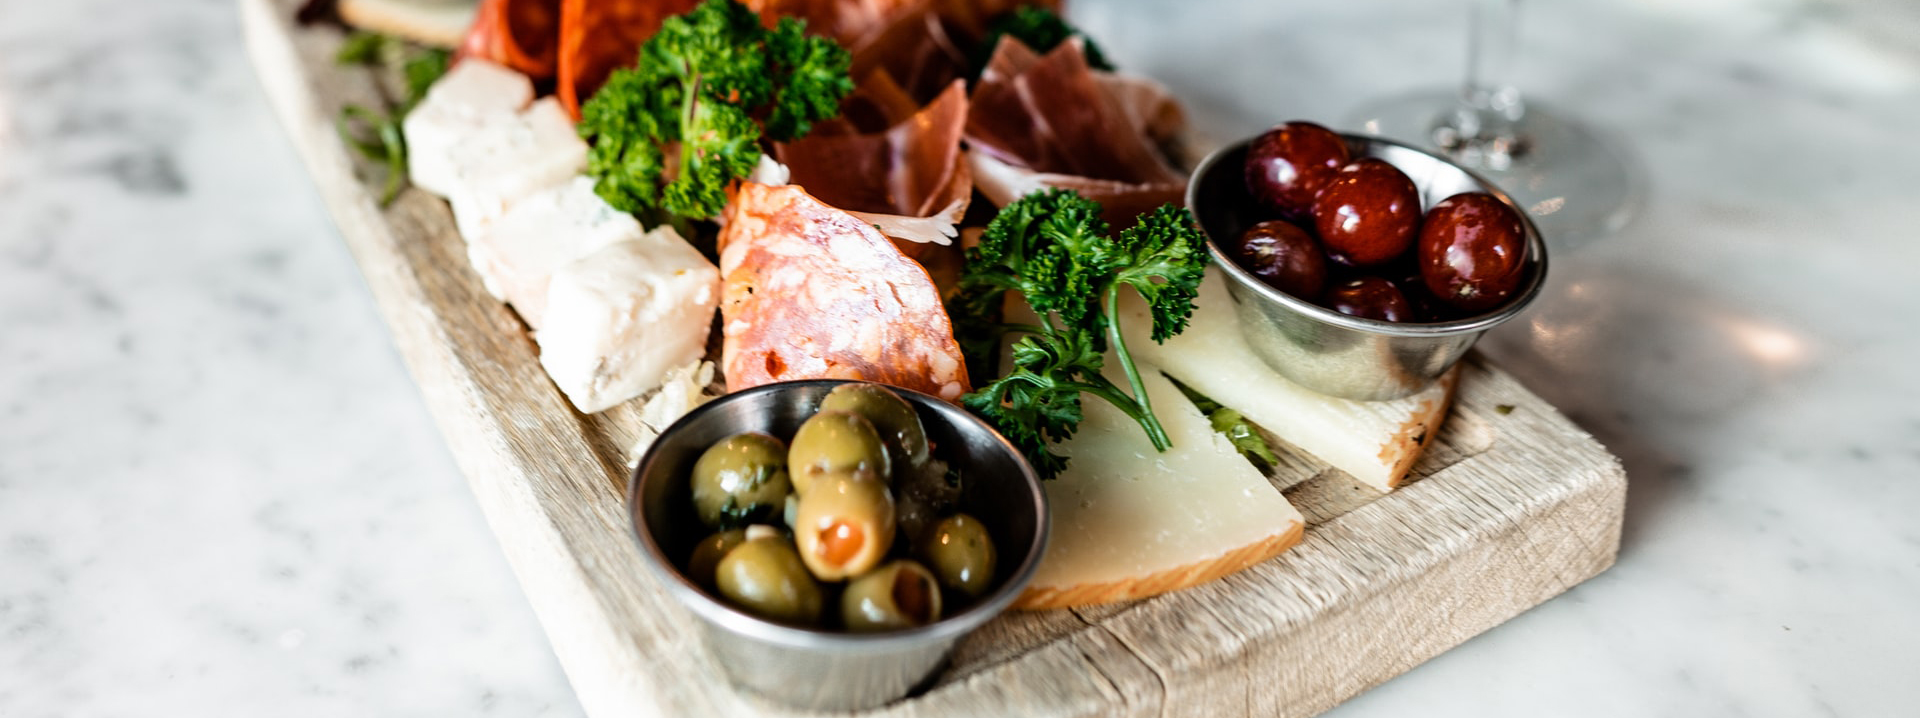 A cutting board covered with charcuterie selections.